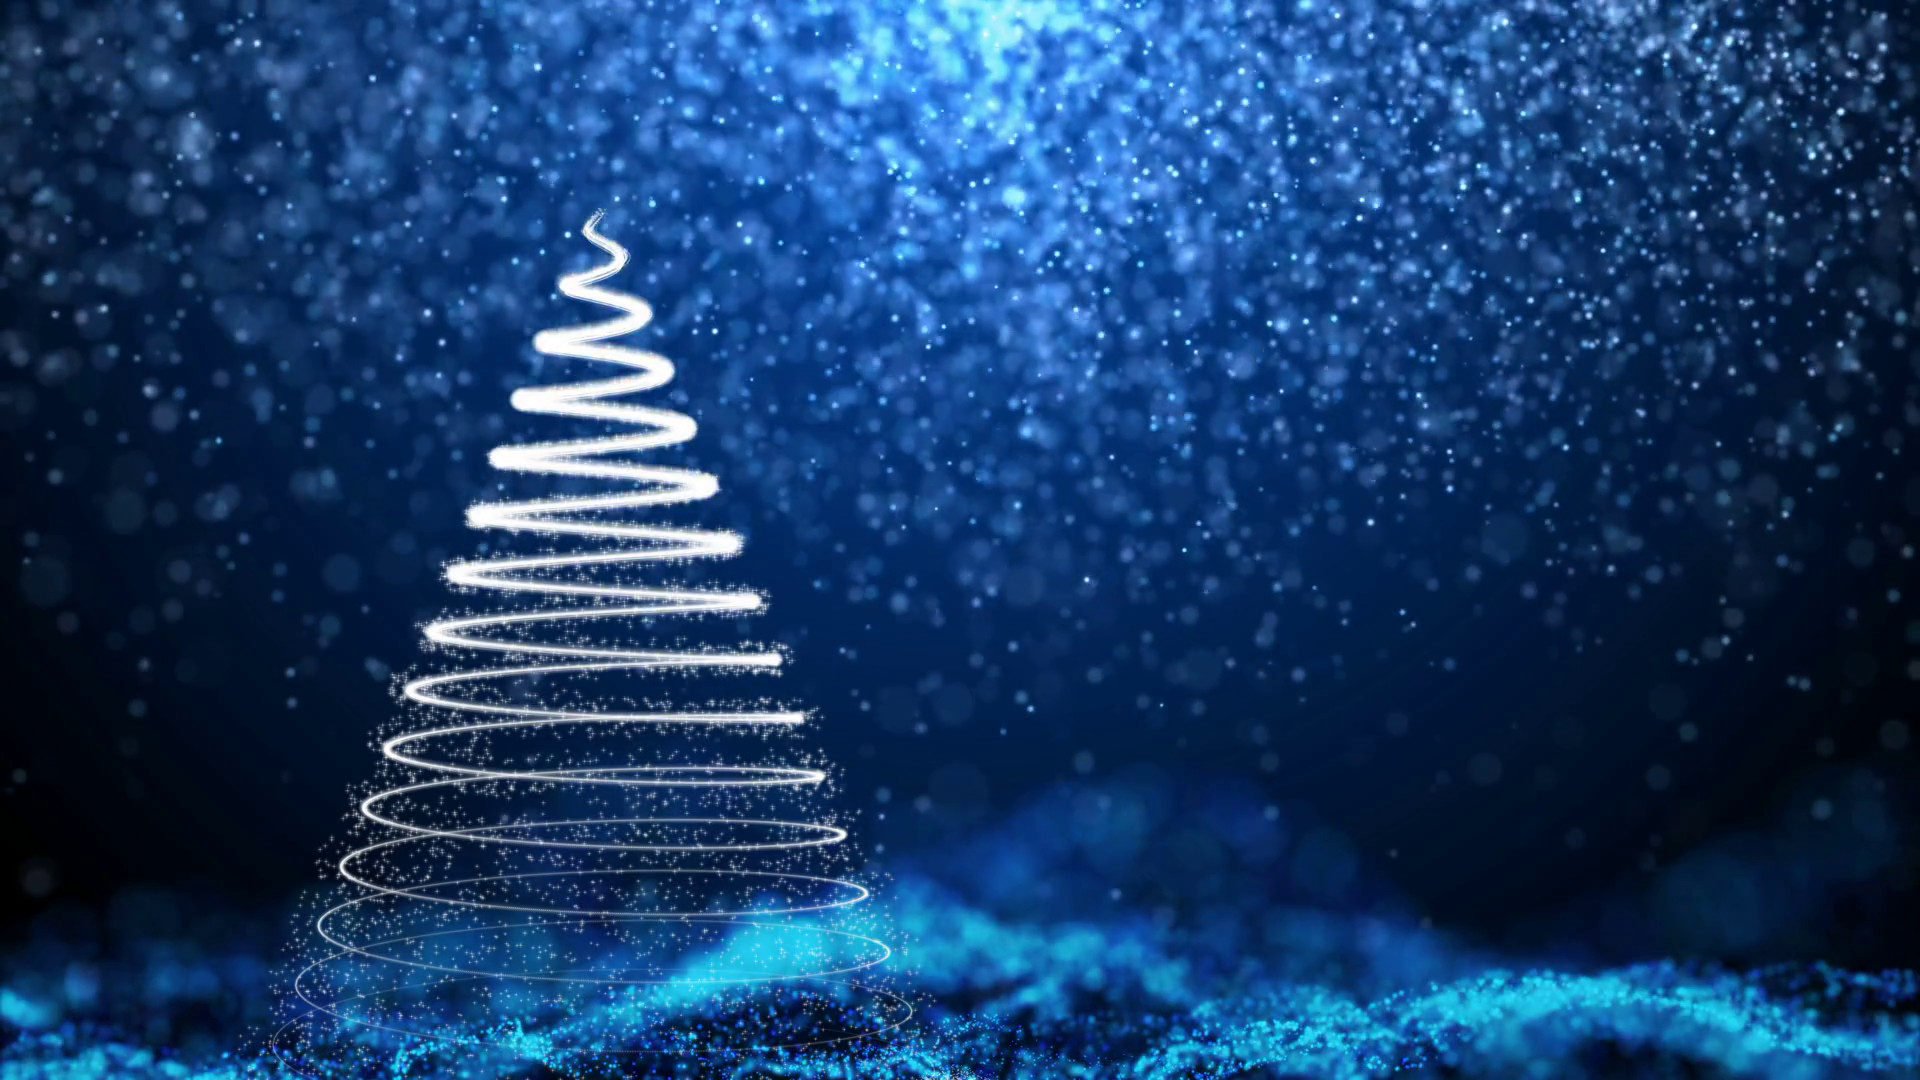 1920x1200 Christmas Lights Wallpapers HD Pictures One Wallpaper 1920A 1200 Hd